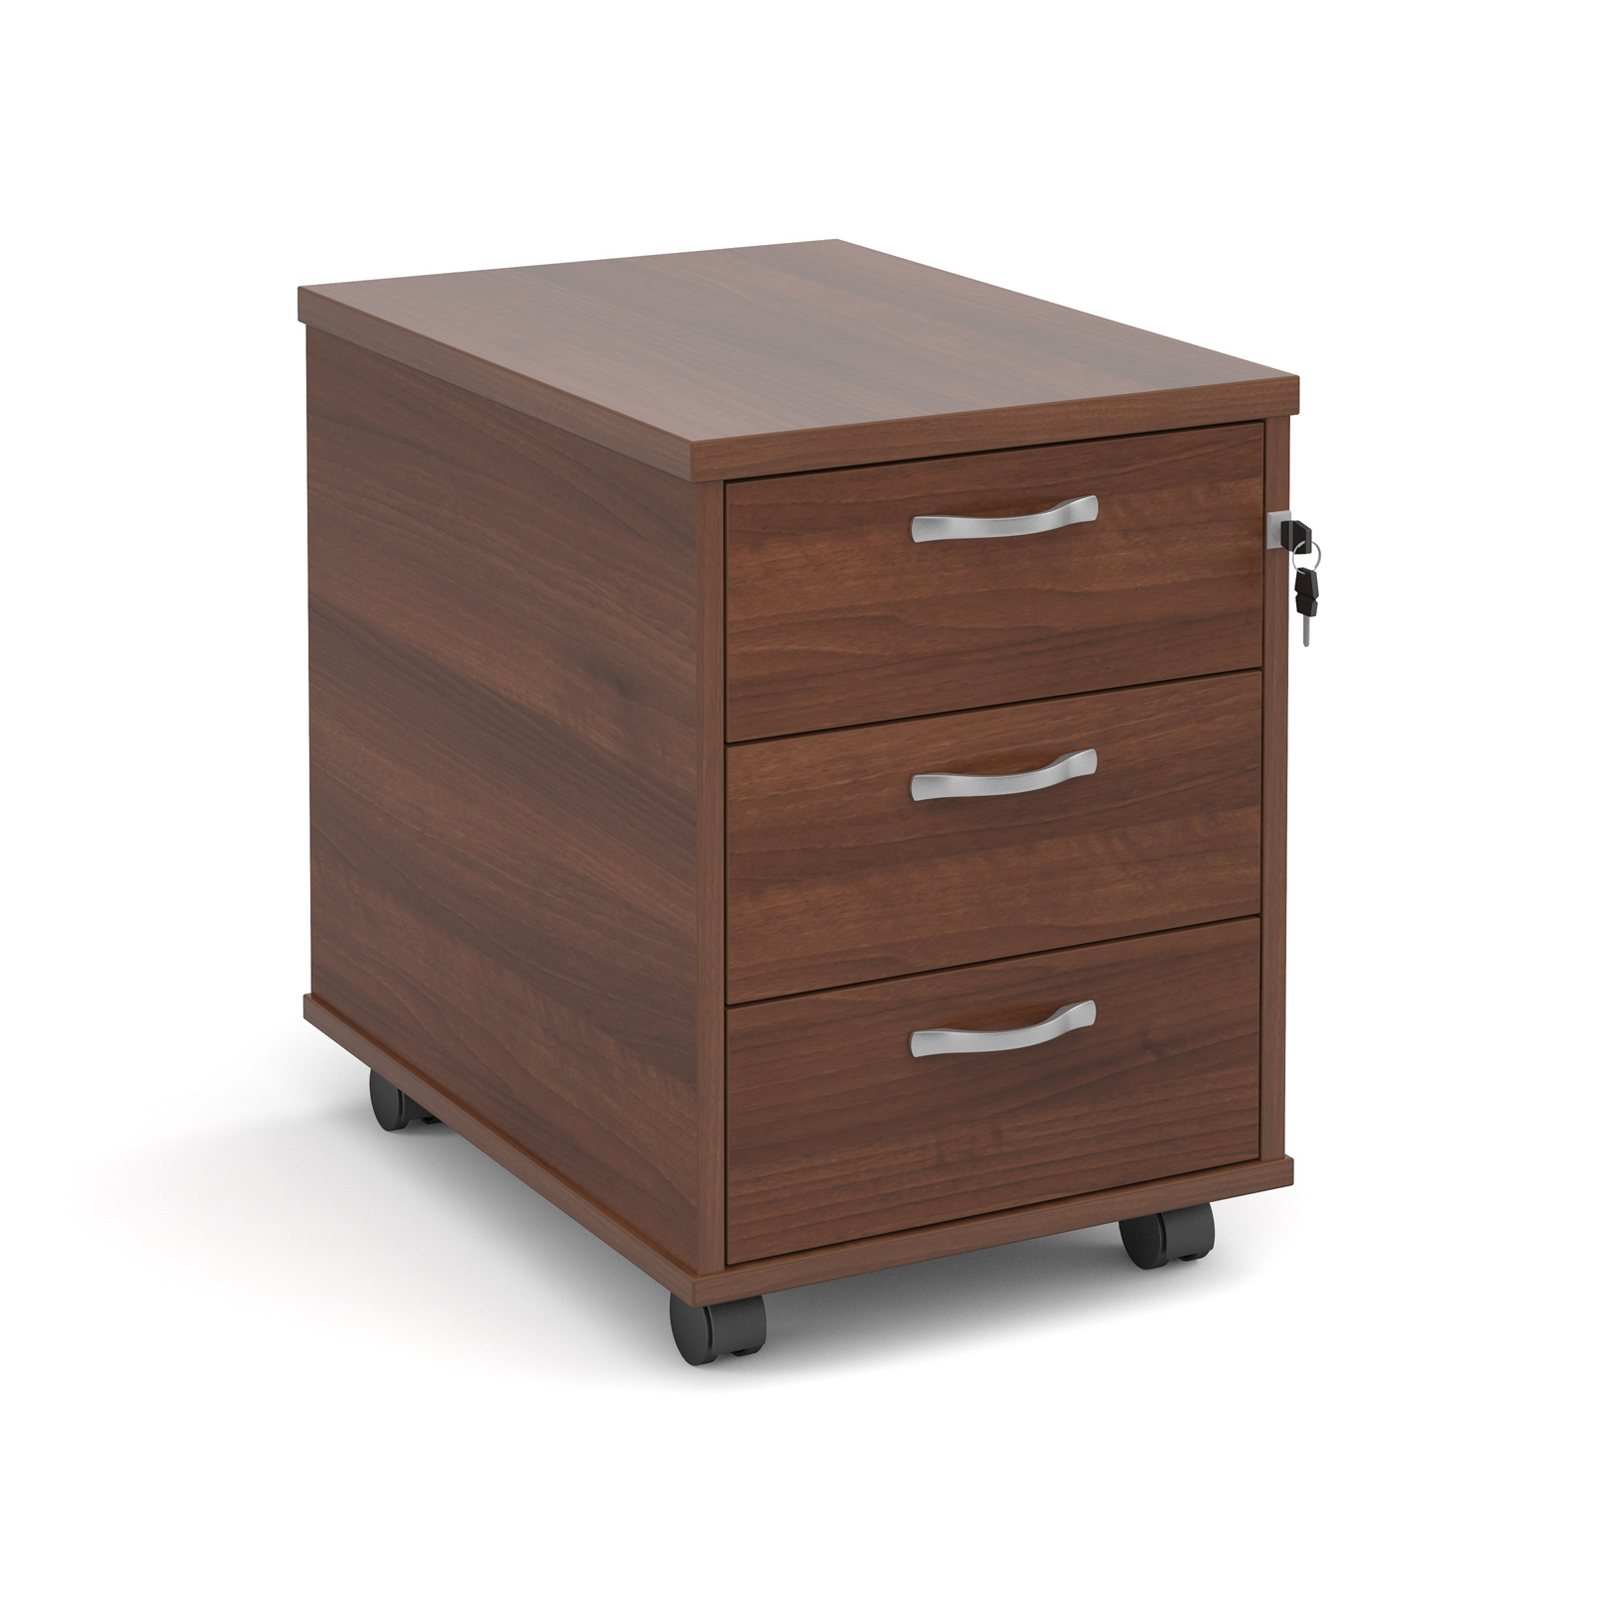 Mobile 3 drawer pedestal with silver handles 600mm deep - walnut